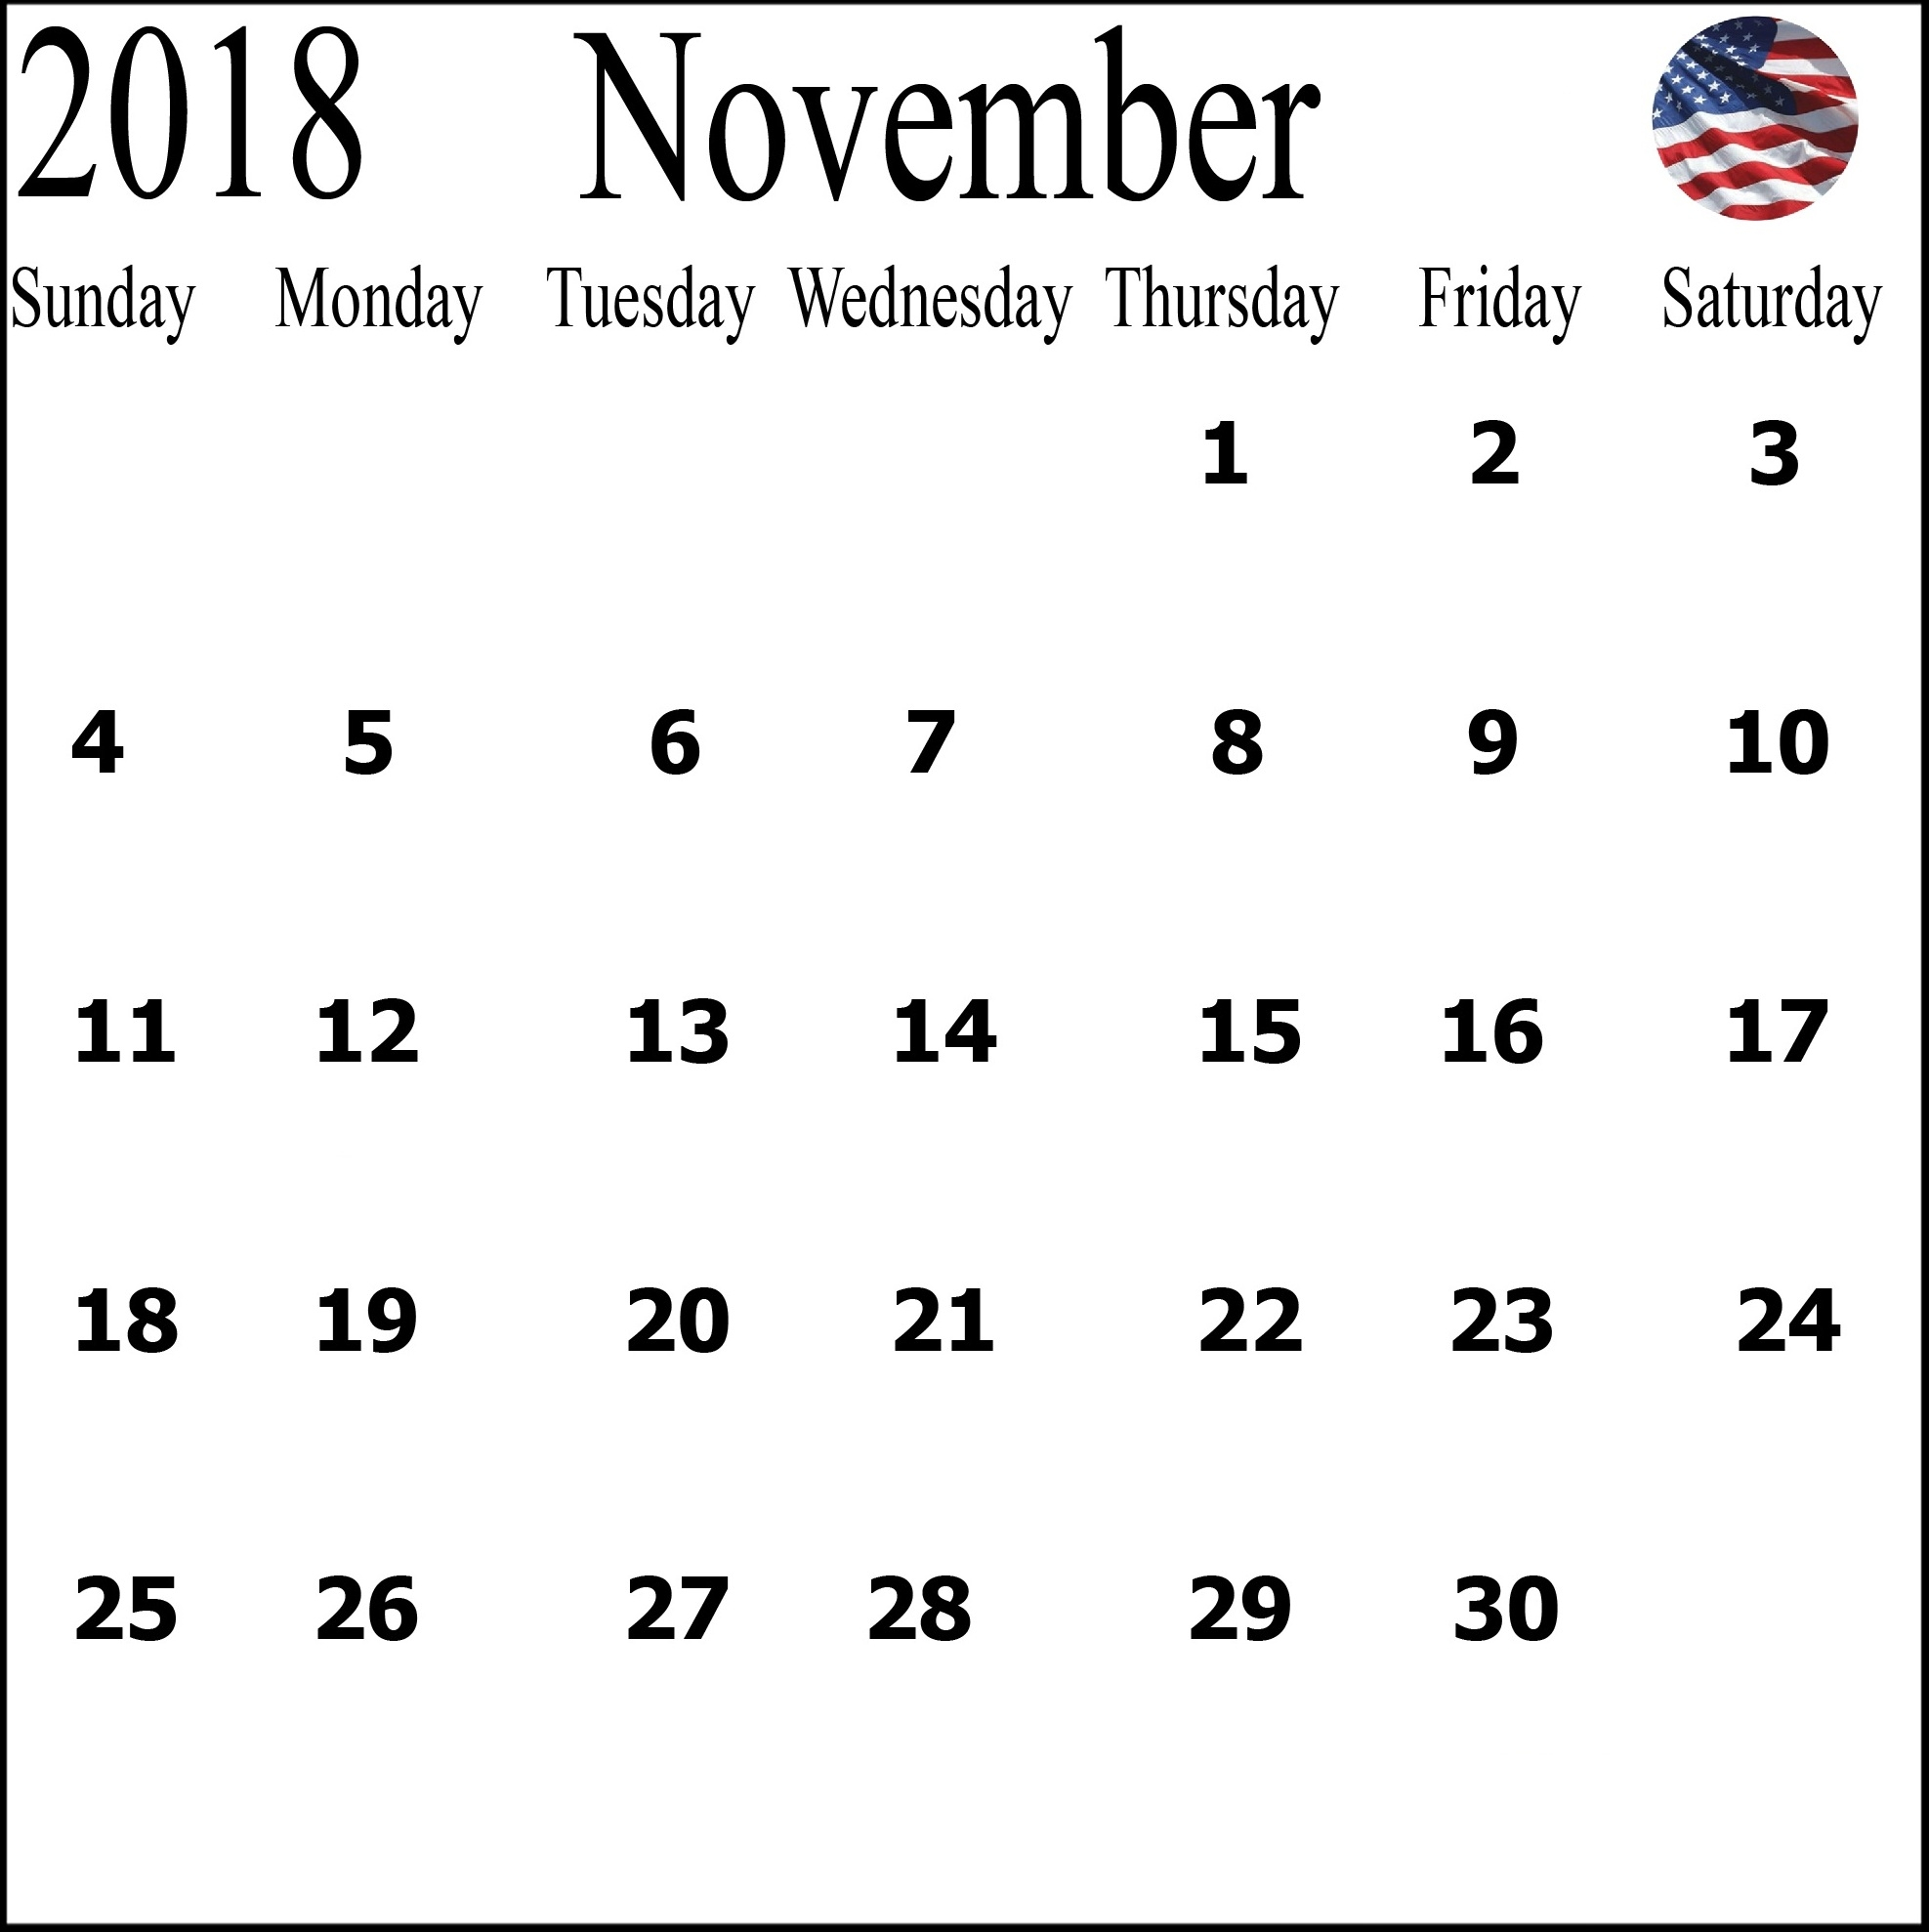 november 2018 calendar us printable 2018 calendar templates pdf excel::November 2018 Calendar USA